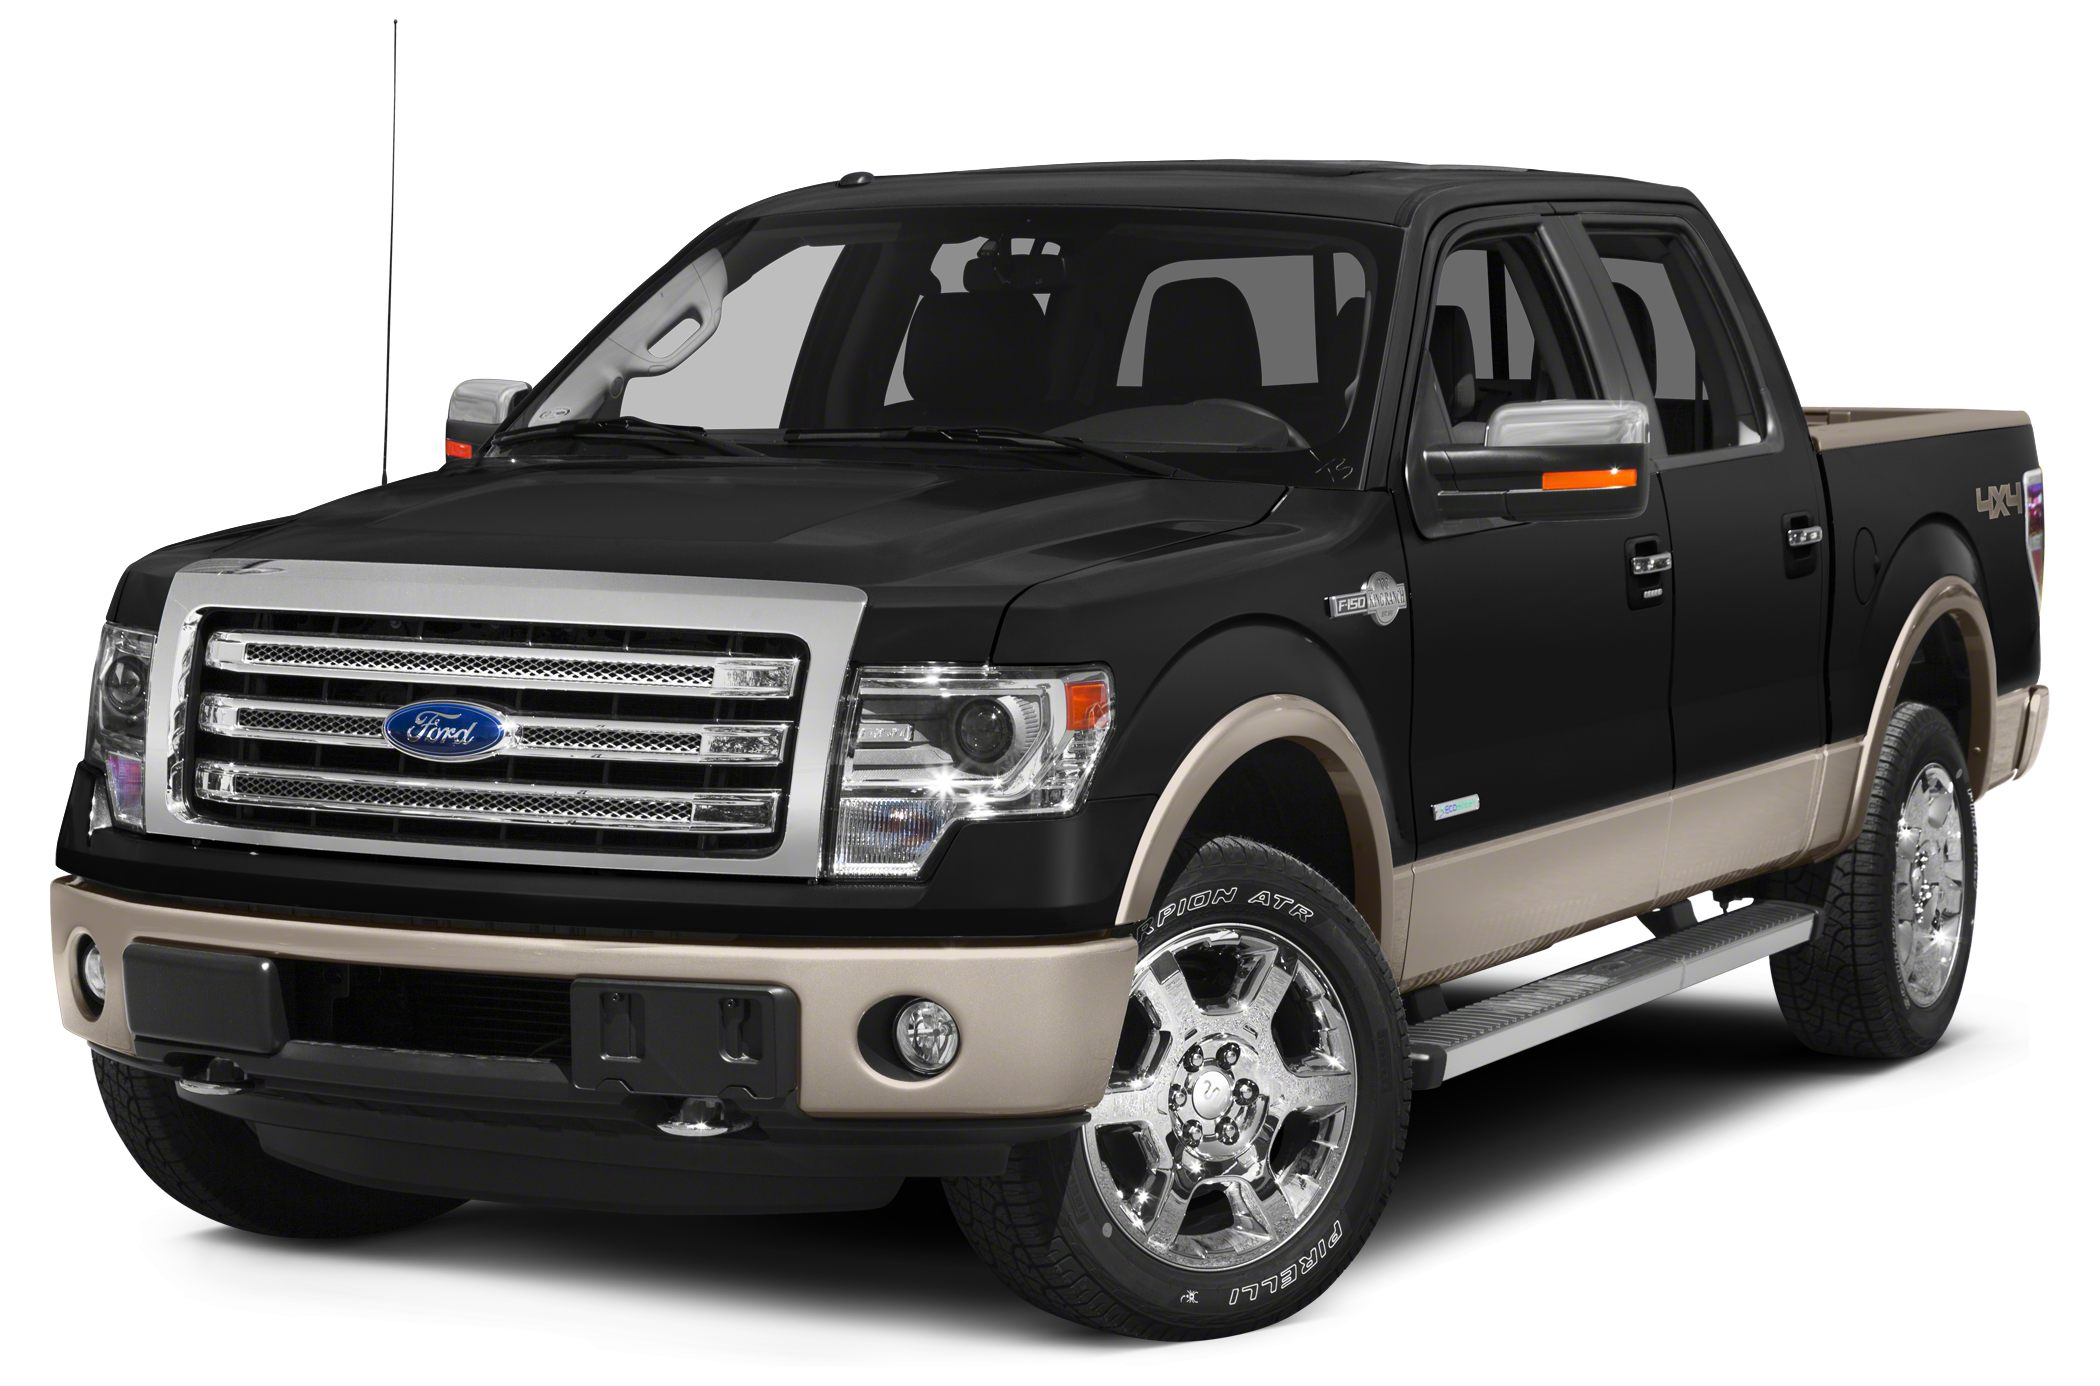 2014 Ford F150 King Ranch Crew Cab Pickup for sale in Charlotte for $41,994 with 23,866 miles.